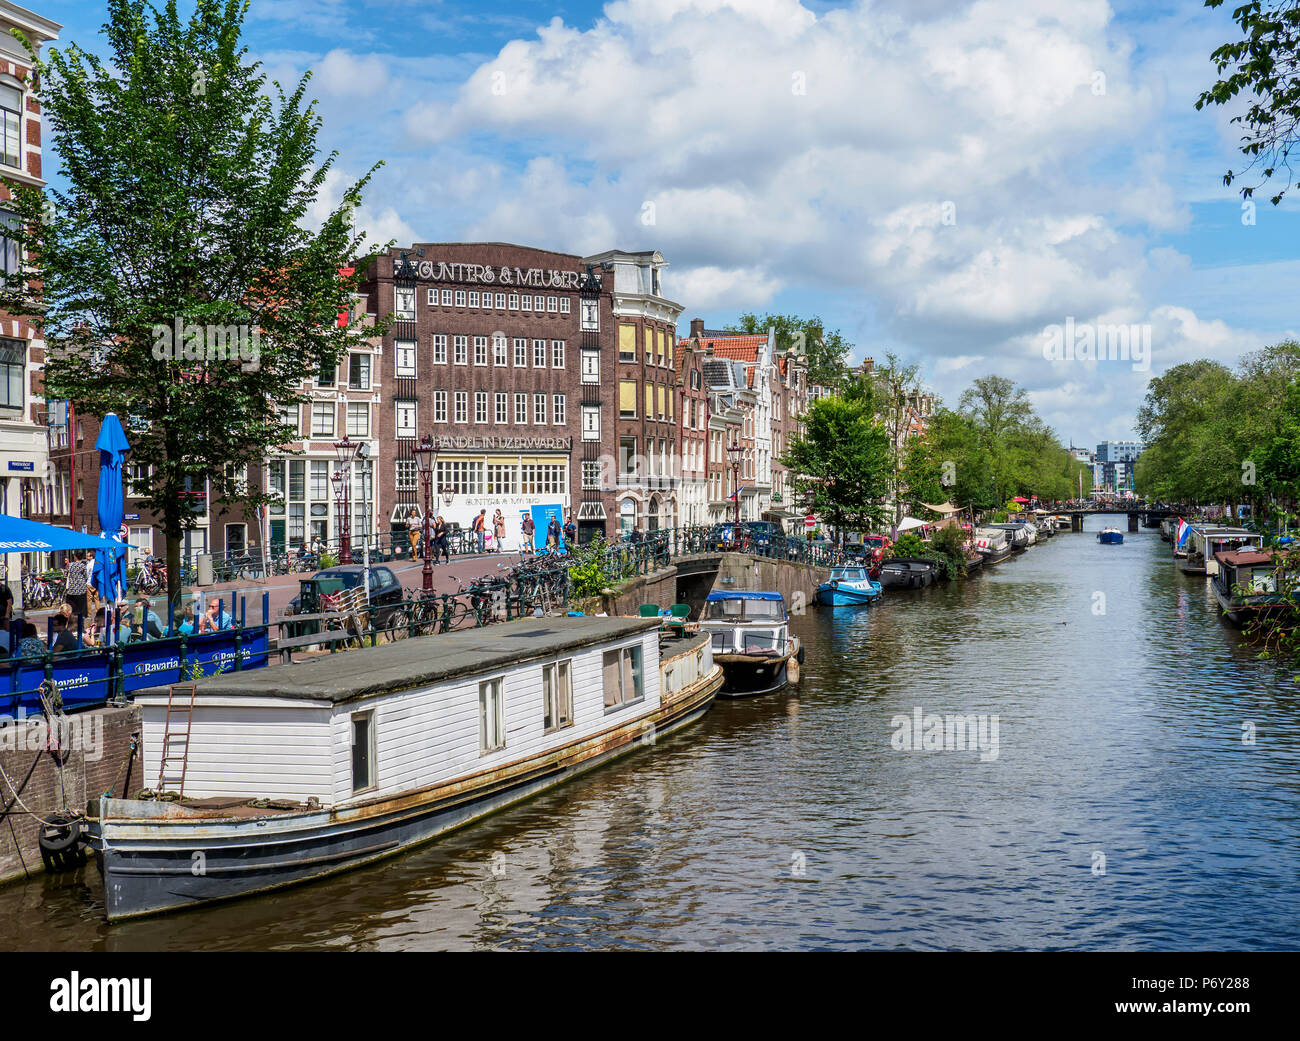 Prinsengracht Canal, Amsterdam, North Holland, The Netherlands - Stock Image